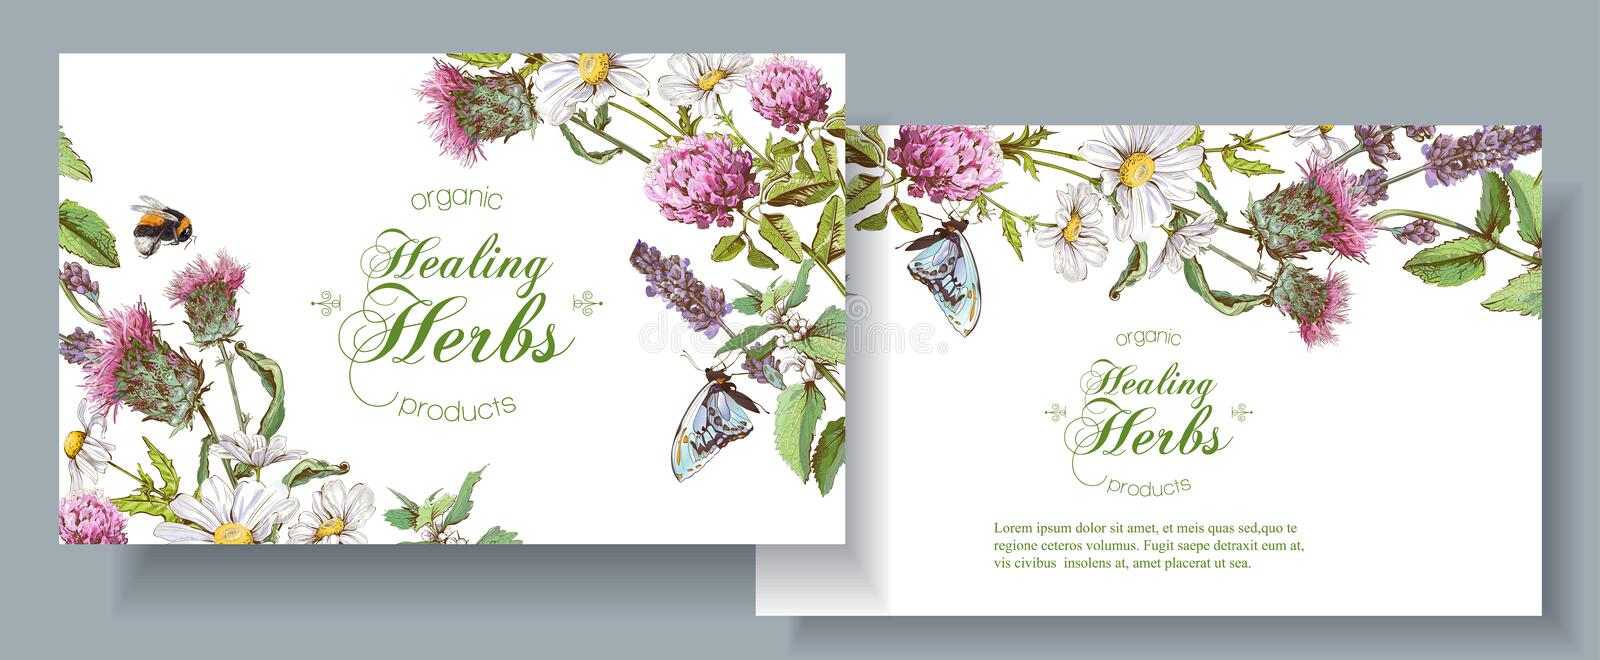 Vector herbal banners stock illustration